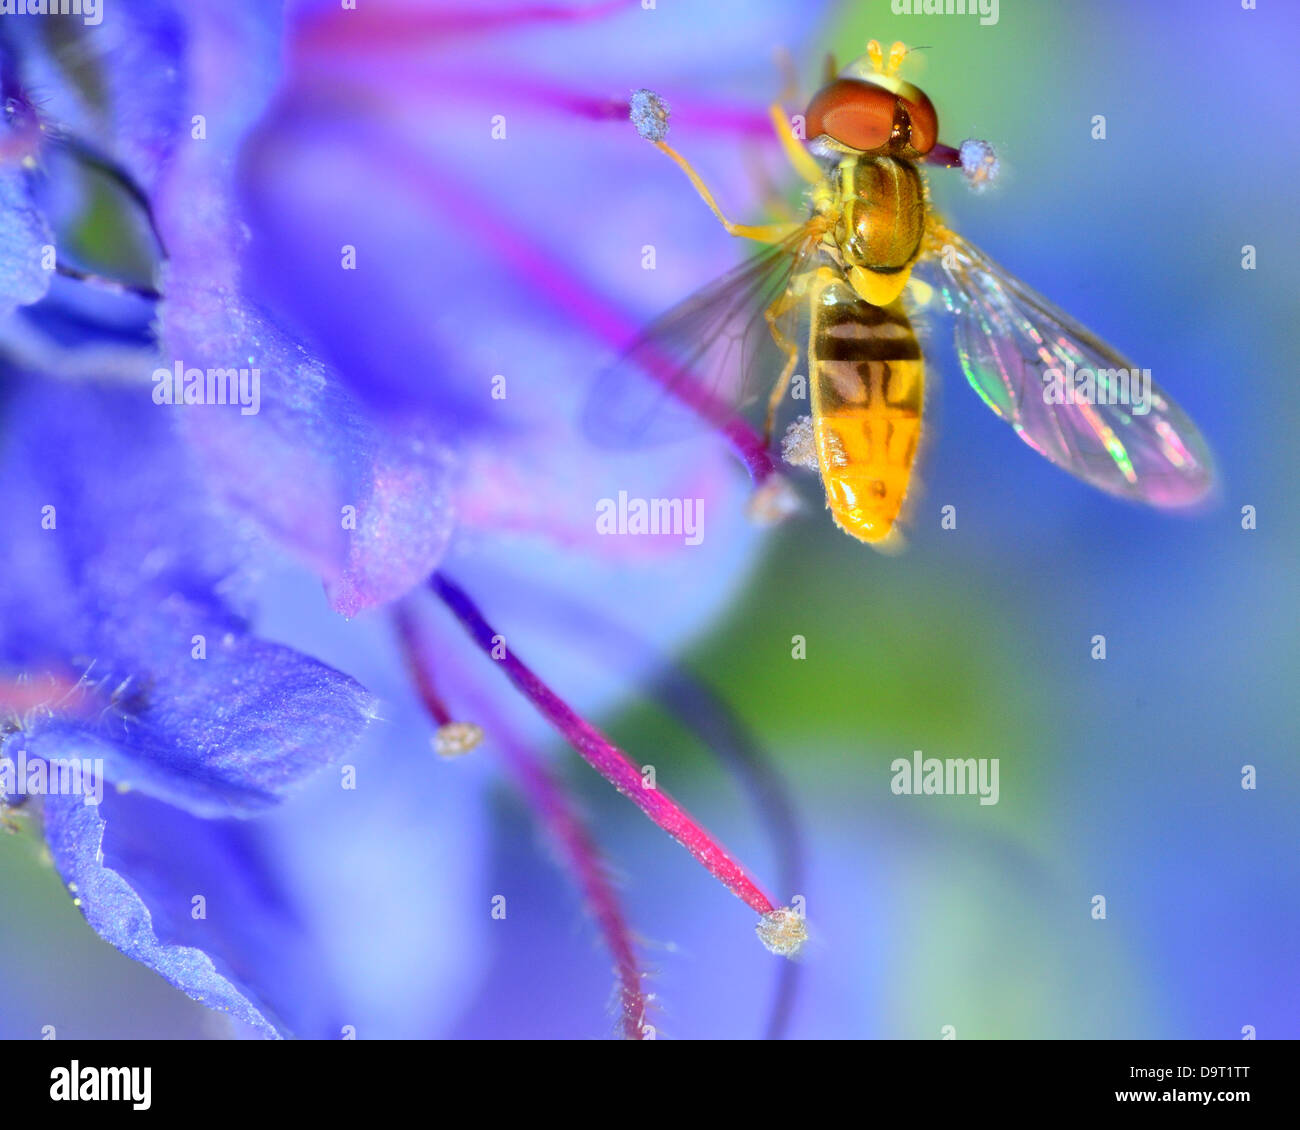 Hoverfly perched on a flower collecting pollen. Stock Photo